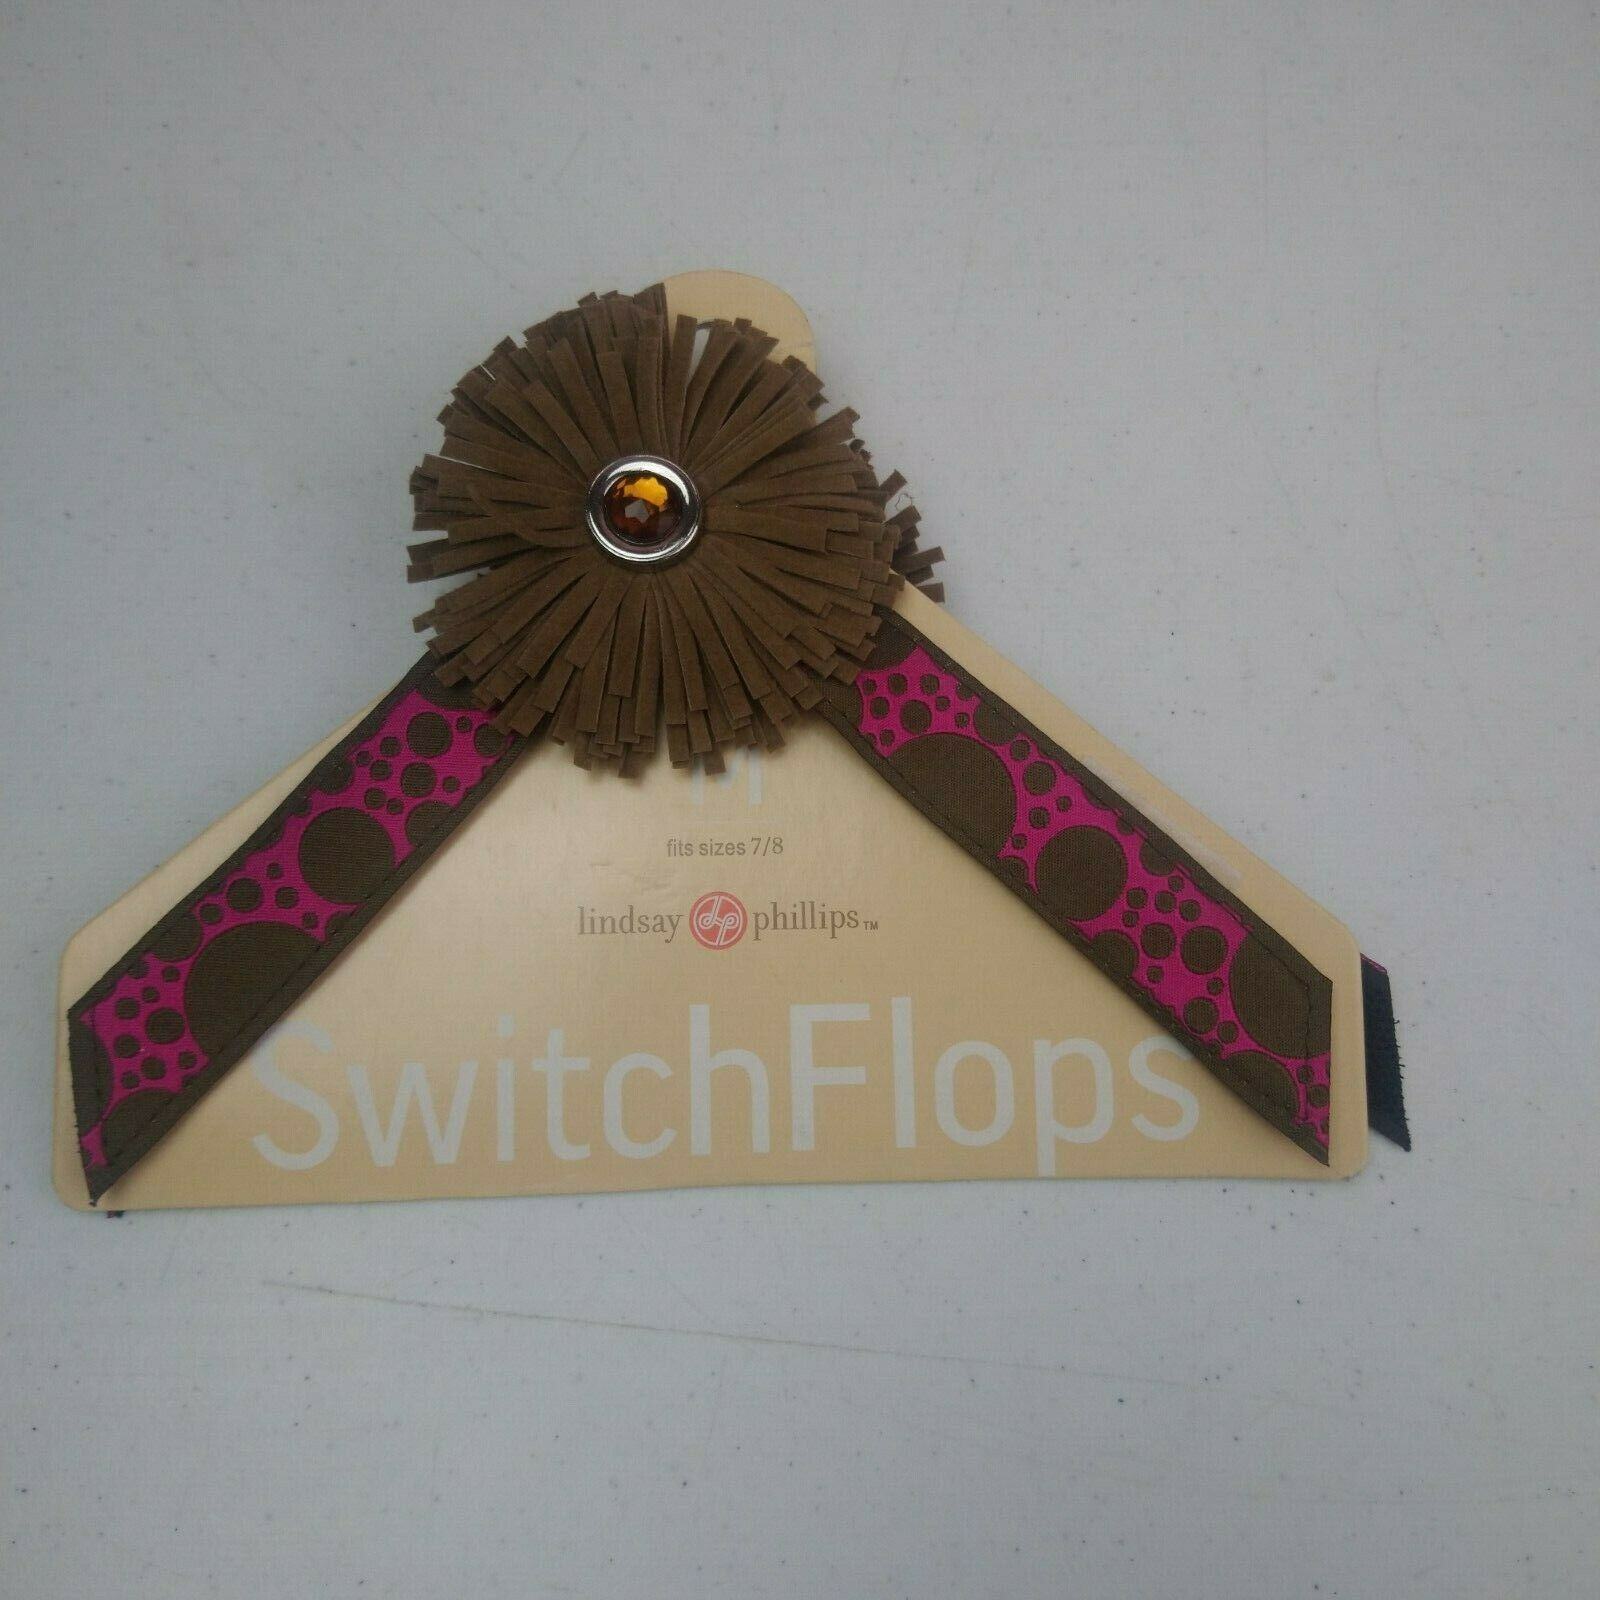 Lindsay Phillips Interchangeable Straps Switch Flops Size M 7- 8 Brown Fringe